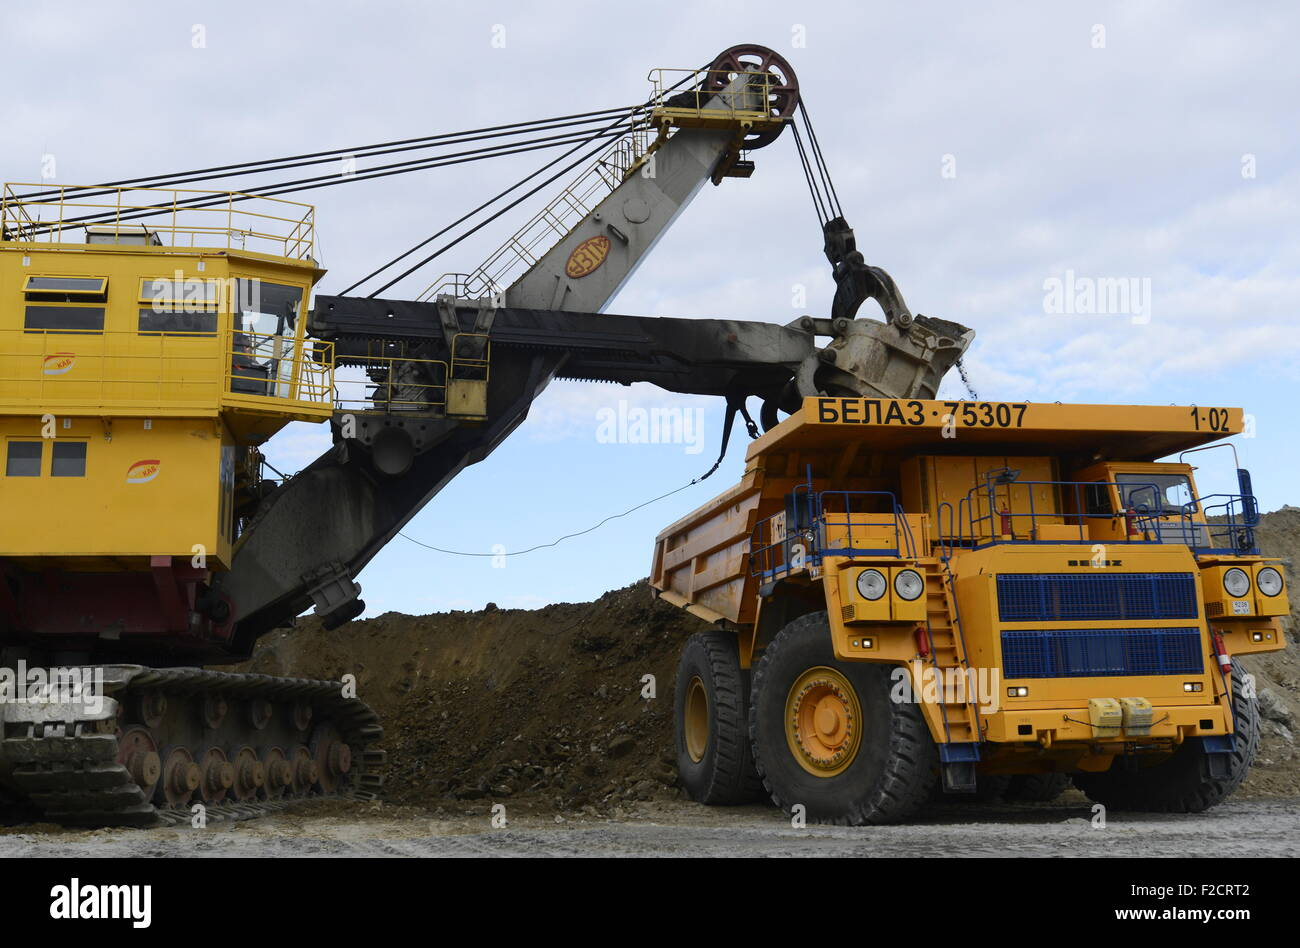 Murmansk Region, Russia  16th Sep, 2015  Excavators and trucks at